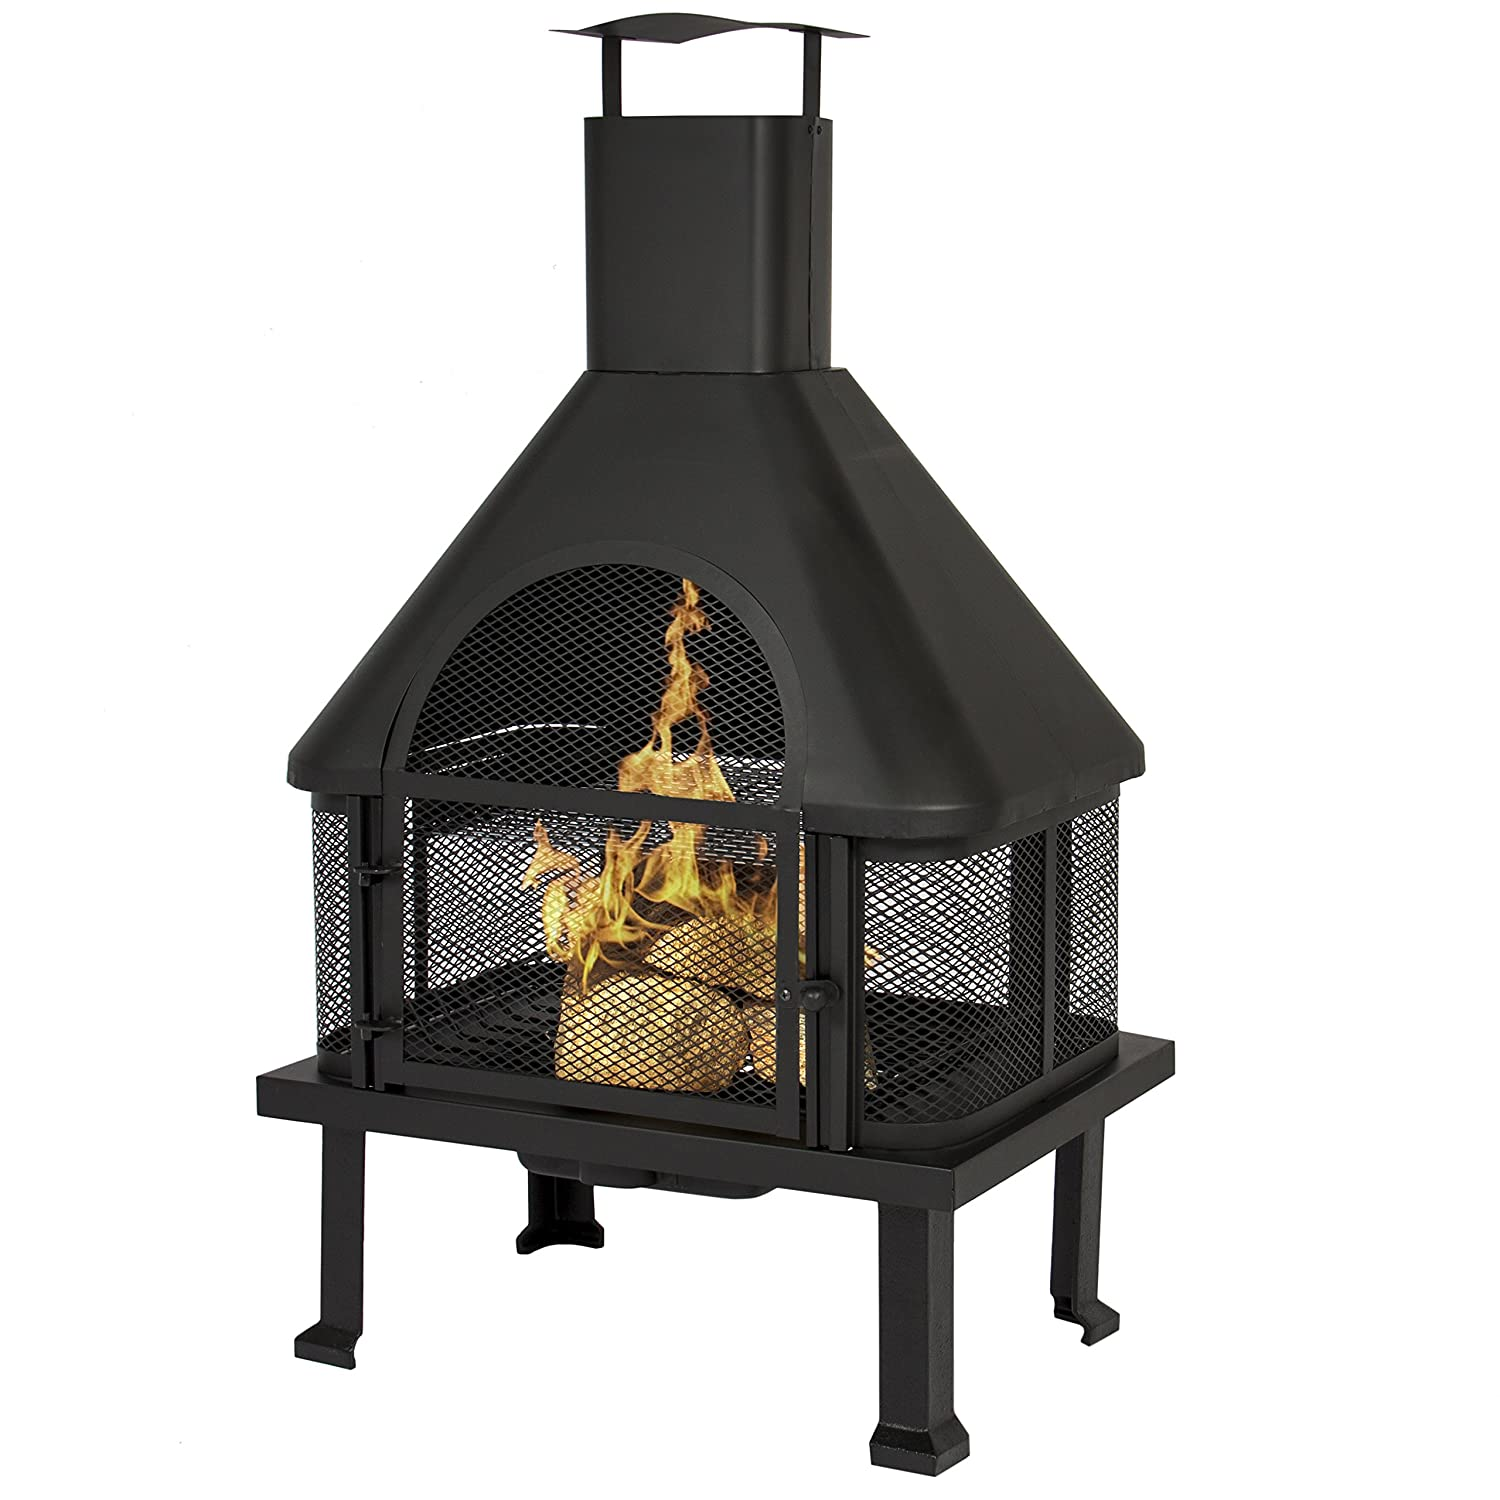 amazon com best choice products firehouse fire pit with chimney